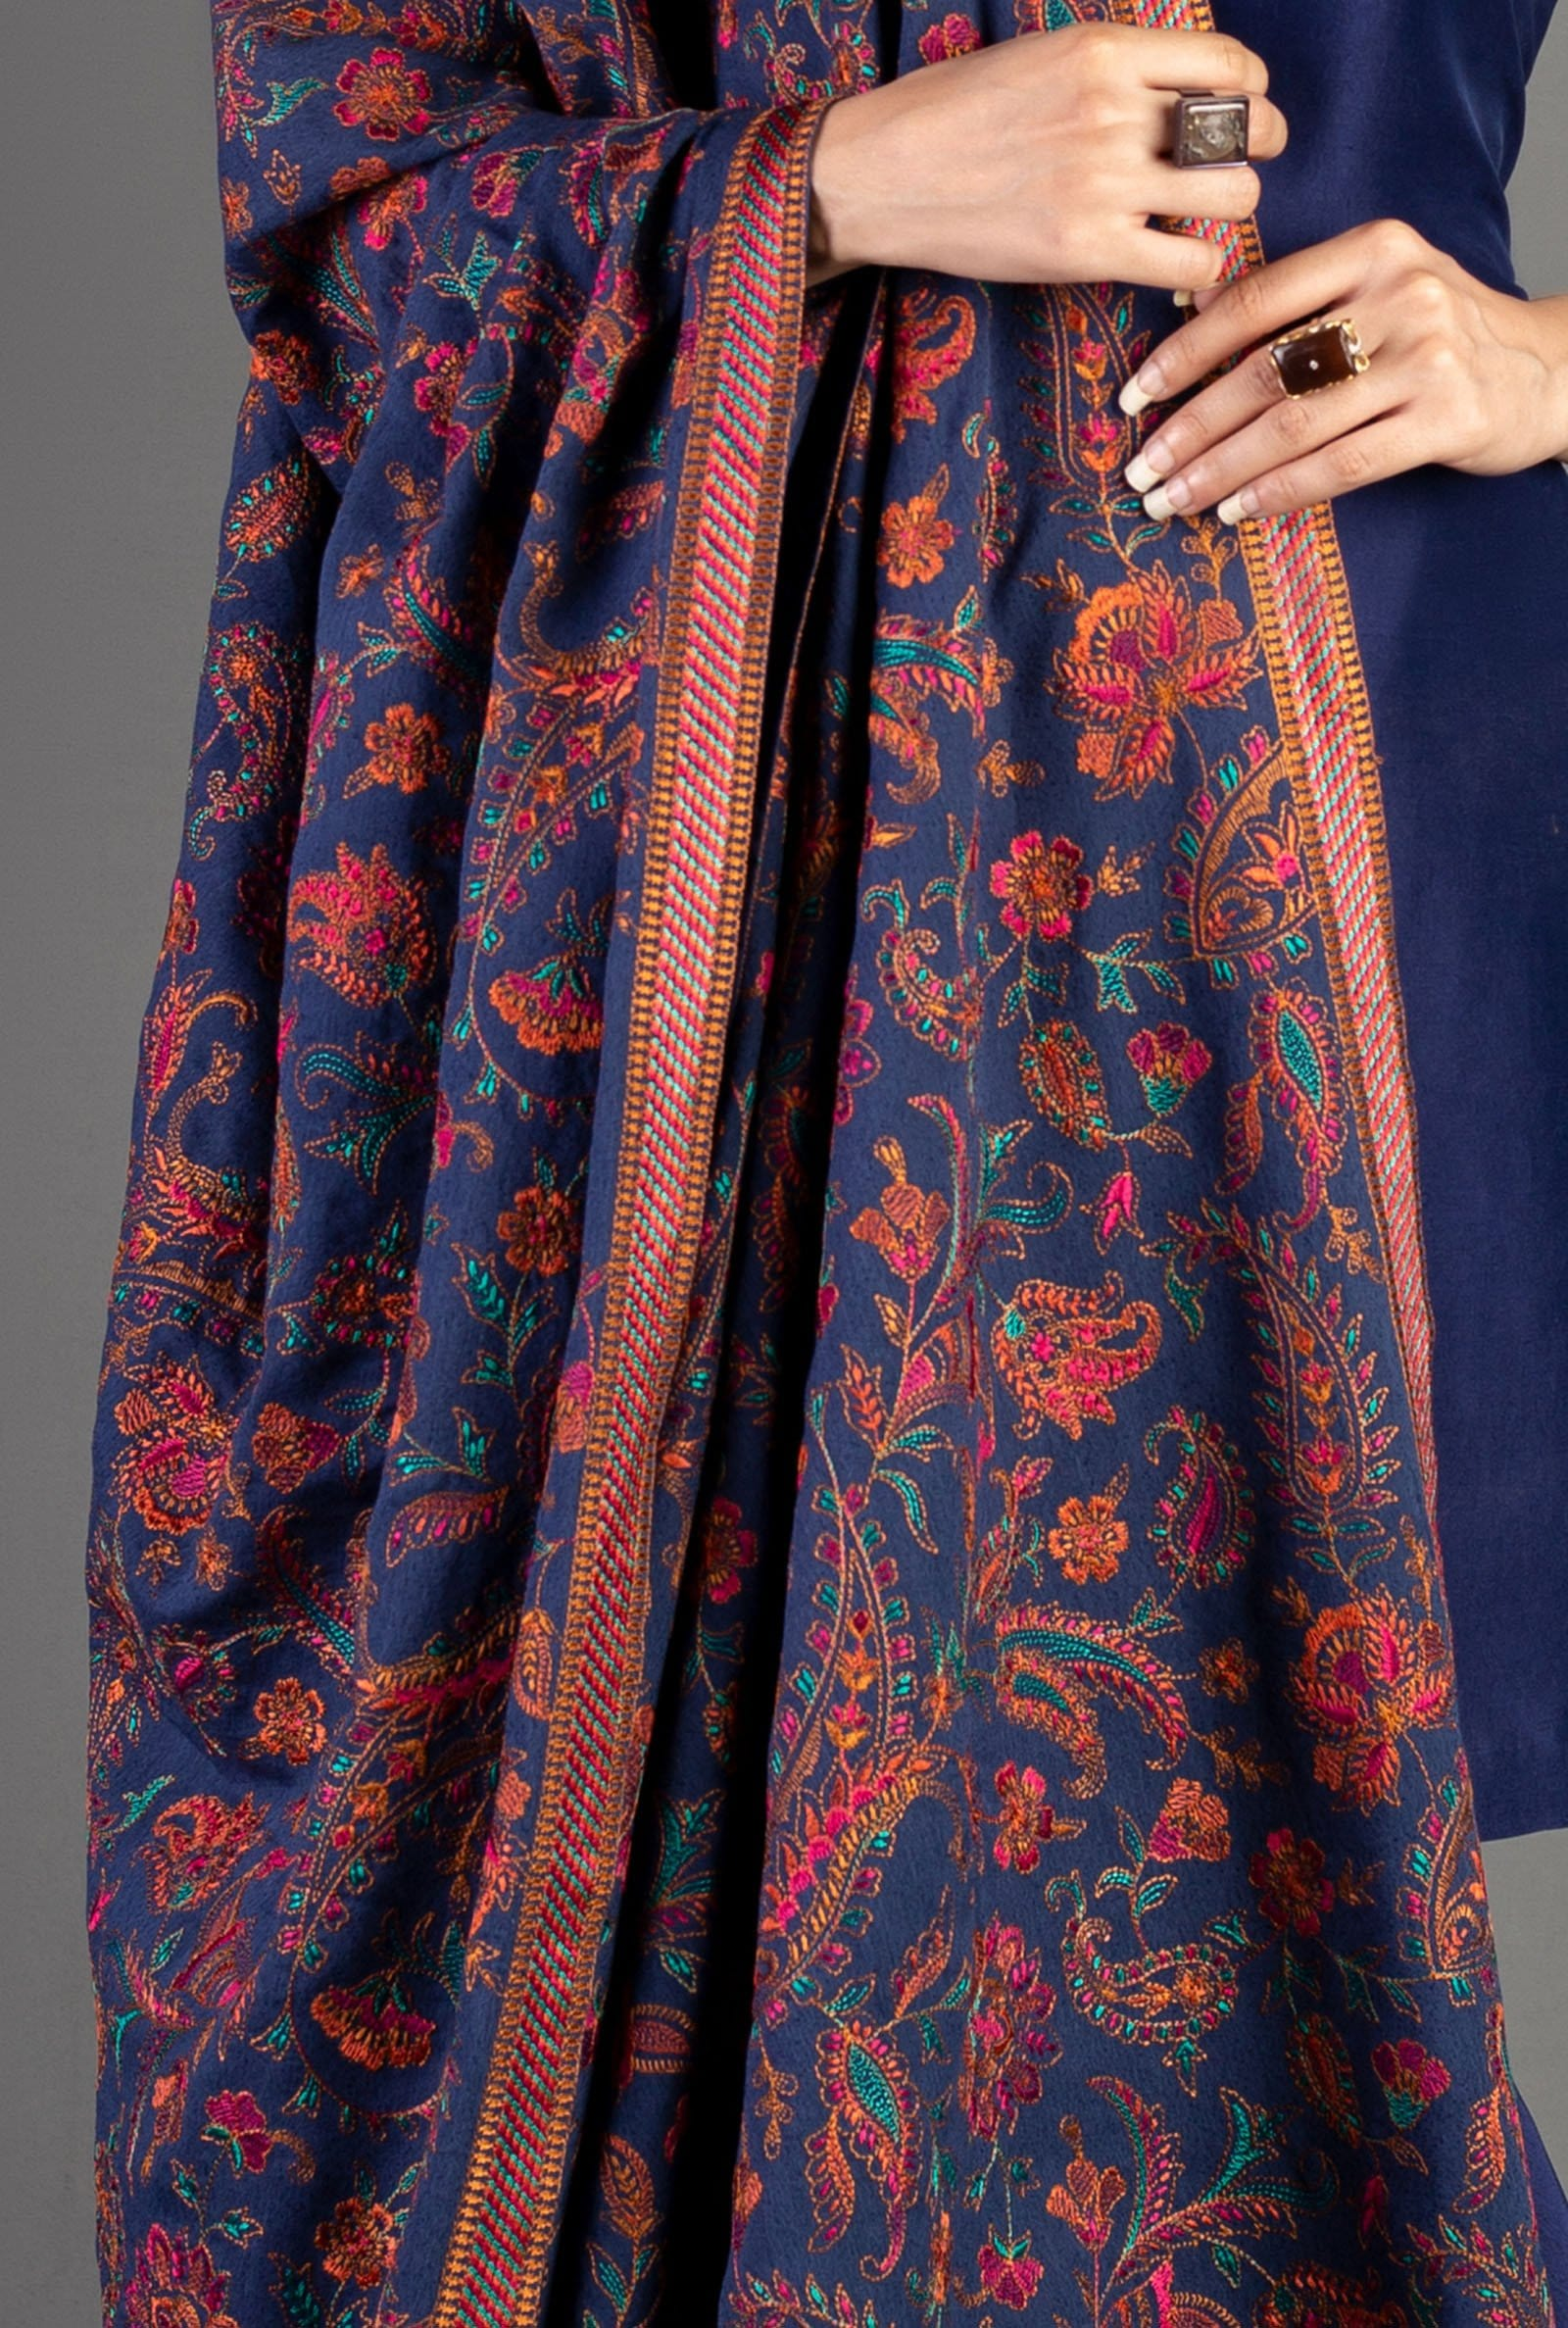 Sarinnah D17-Formal heavy Embroidered Karandi Lawn Shawl